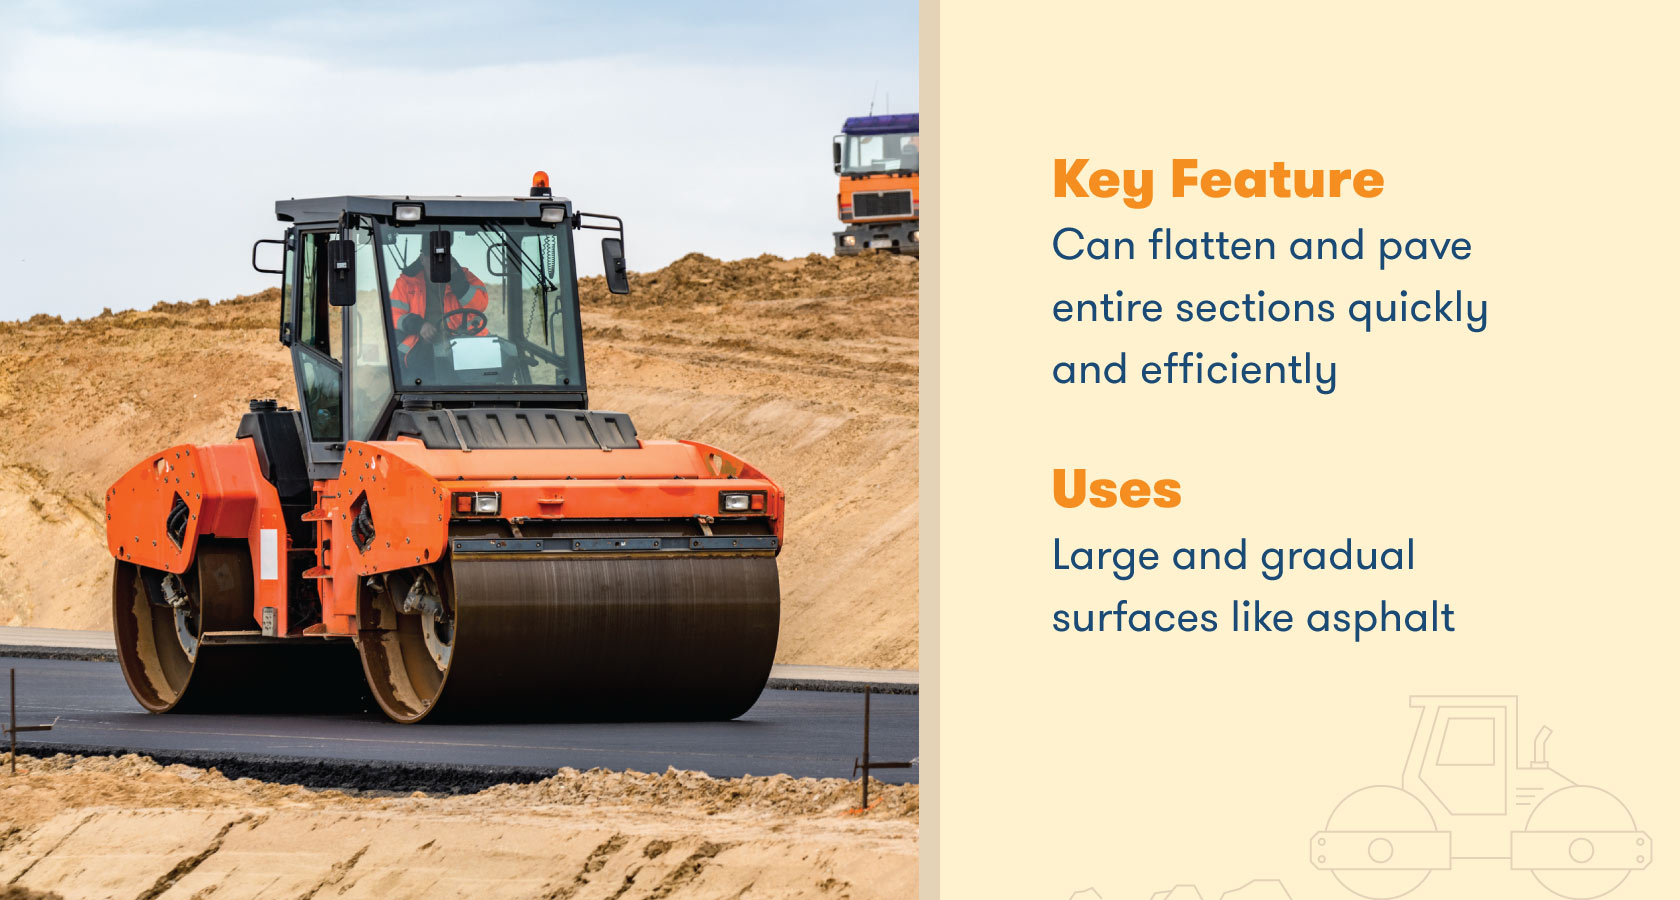 can flatten and pave entire sections quickly and efficiently